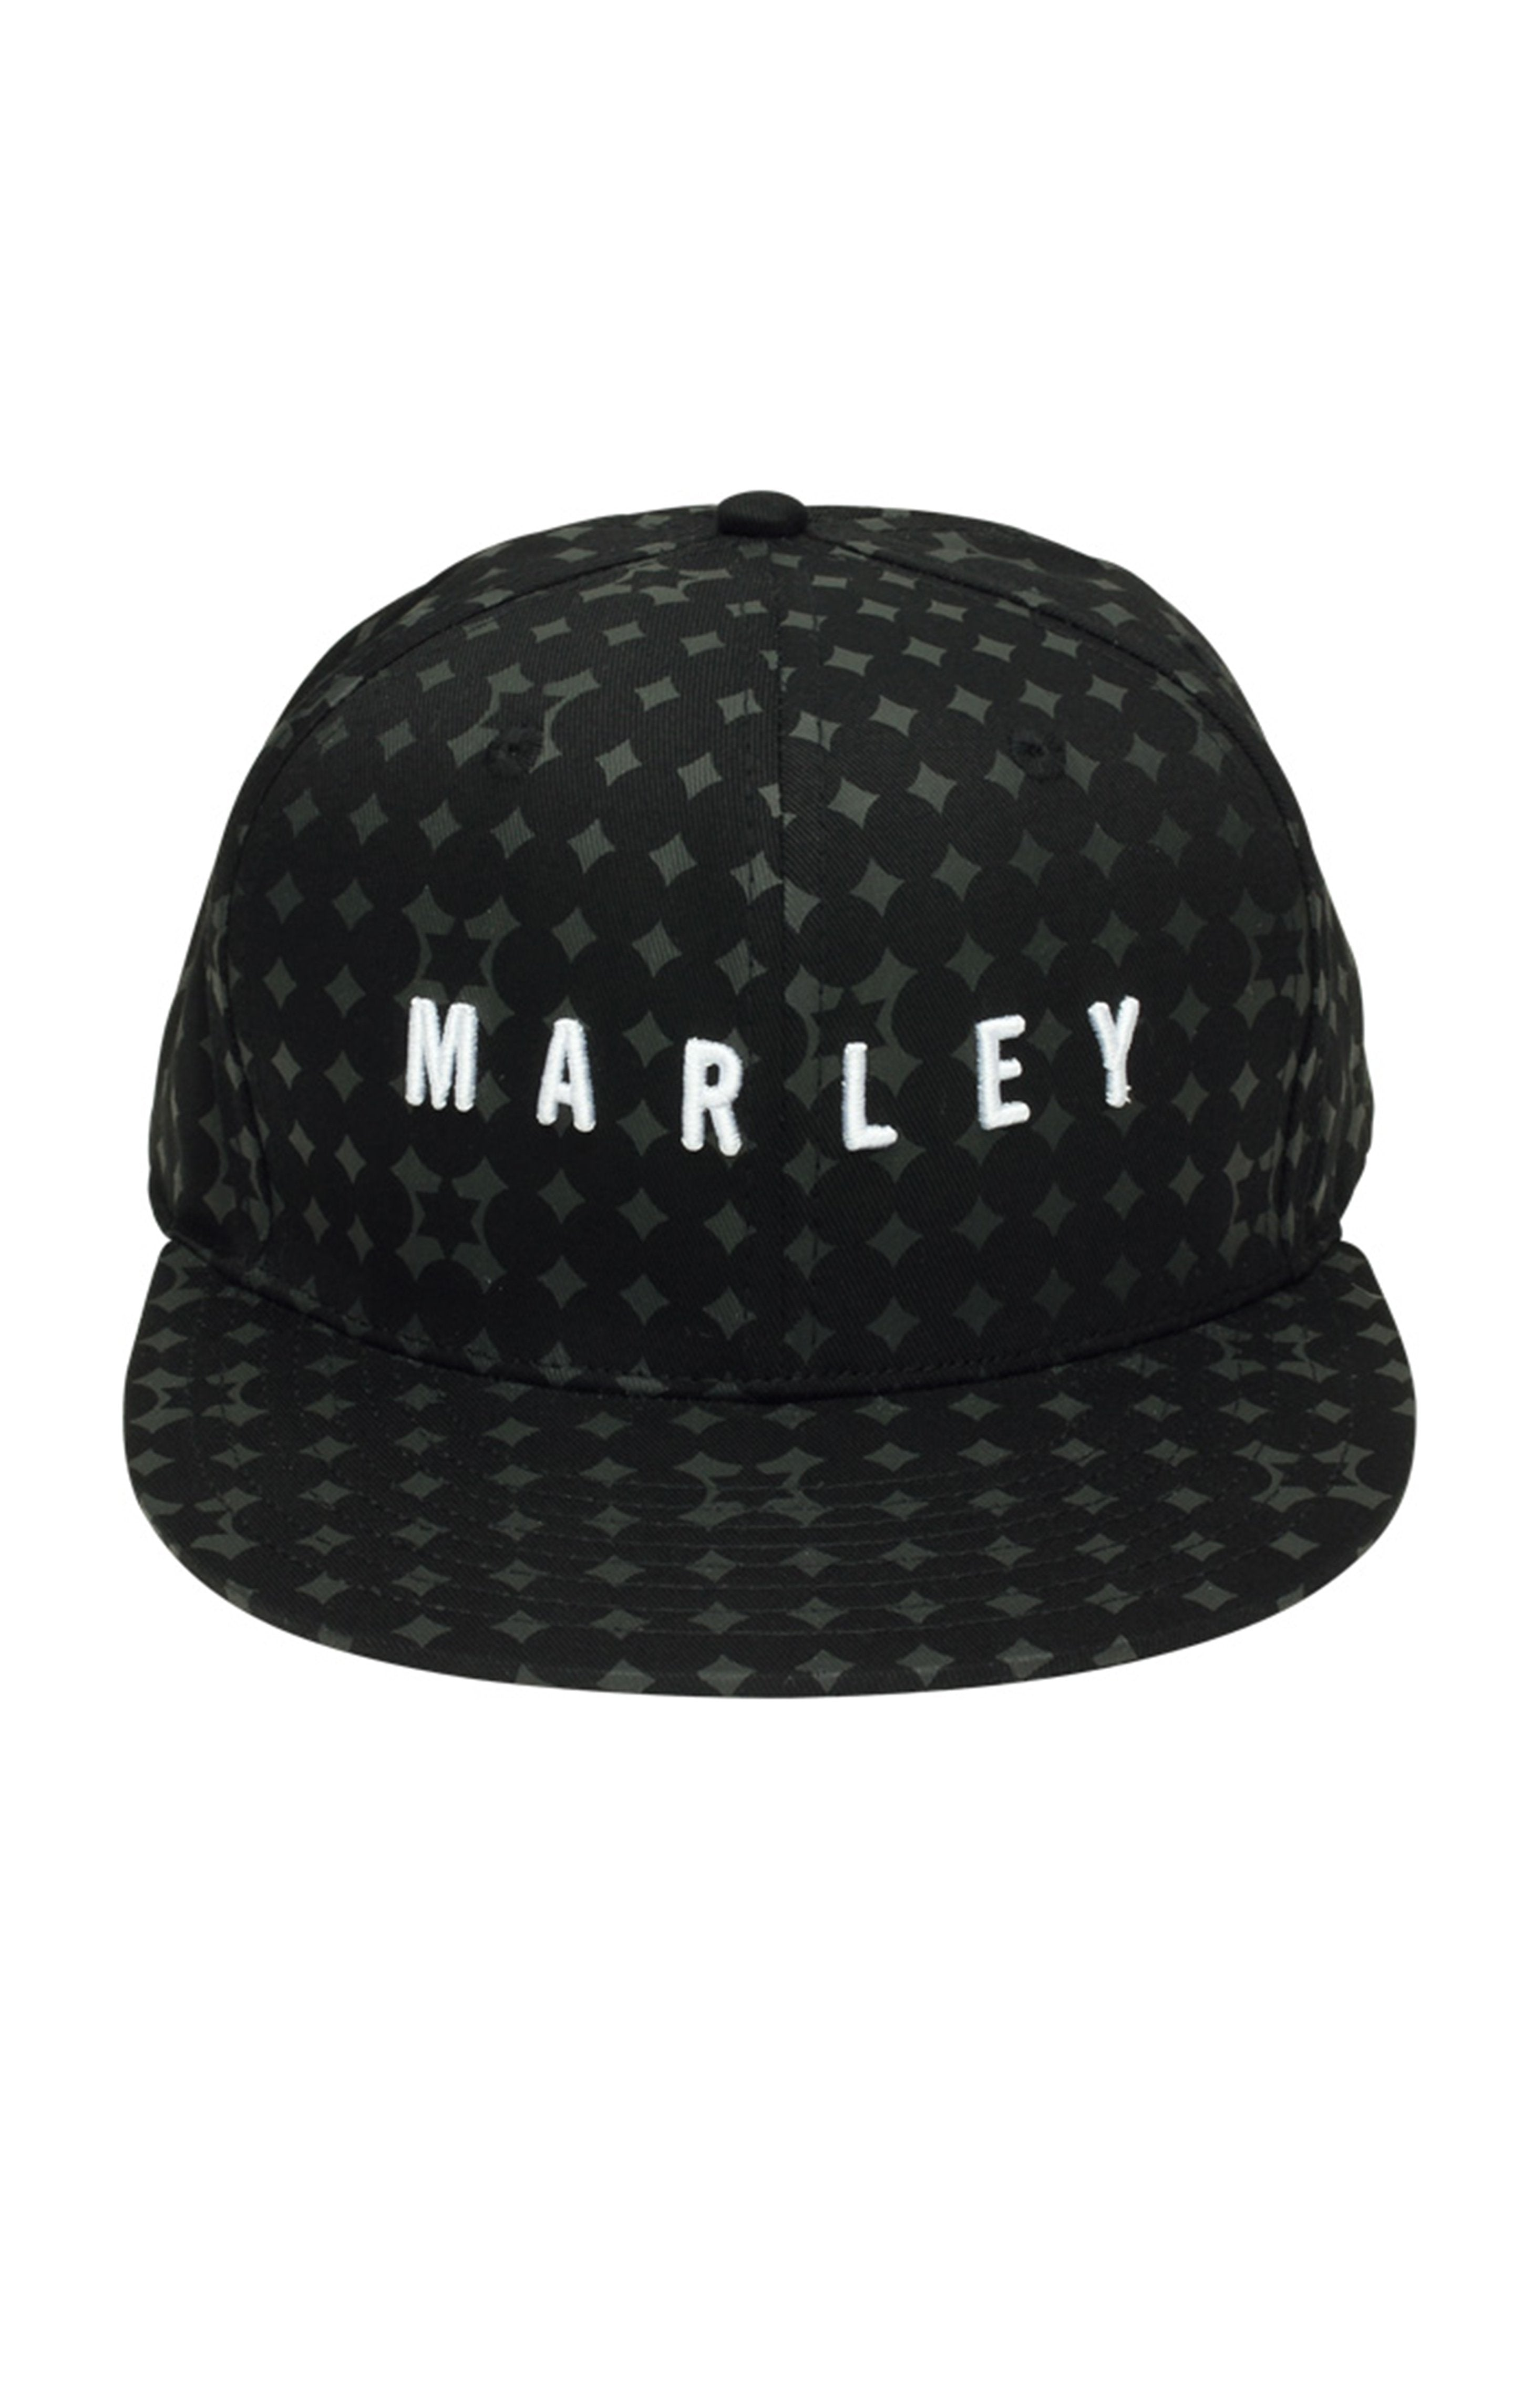 Marley Apparel Embroidered Logo Hat